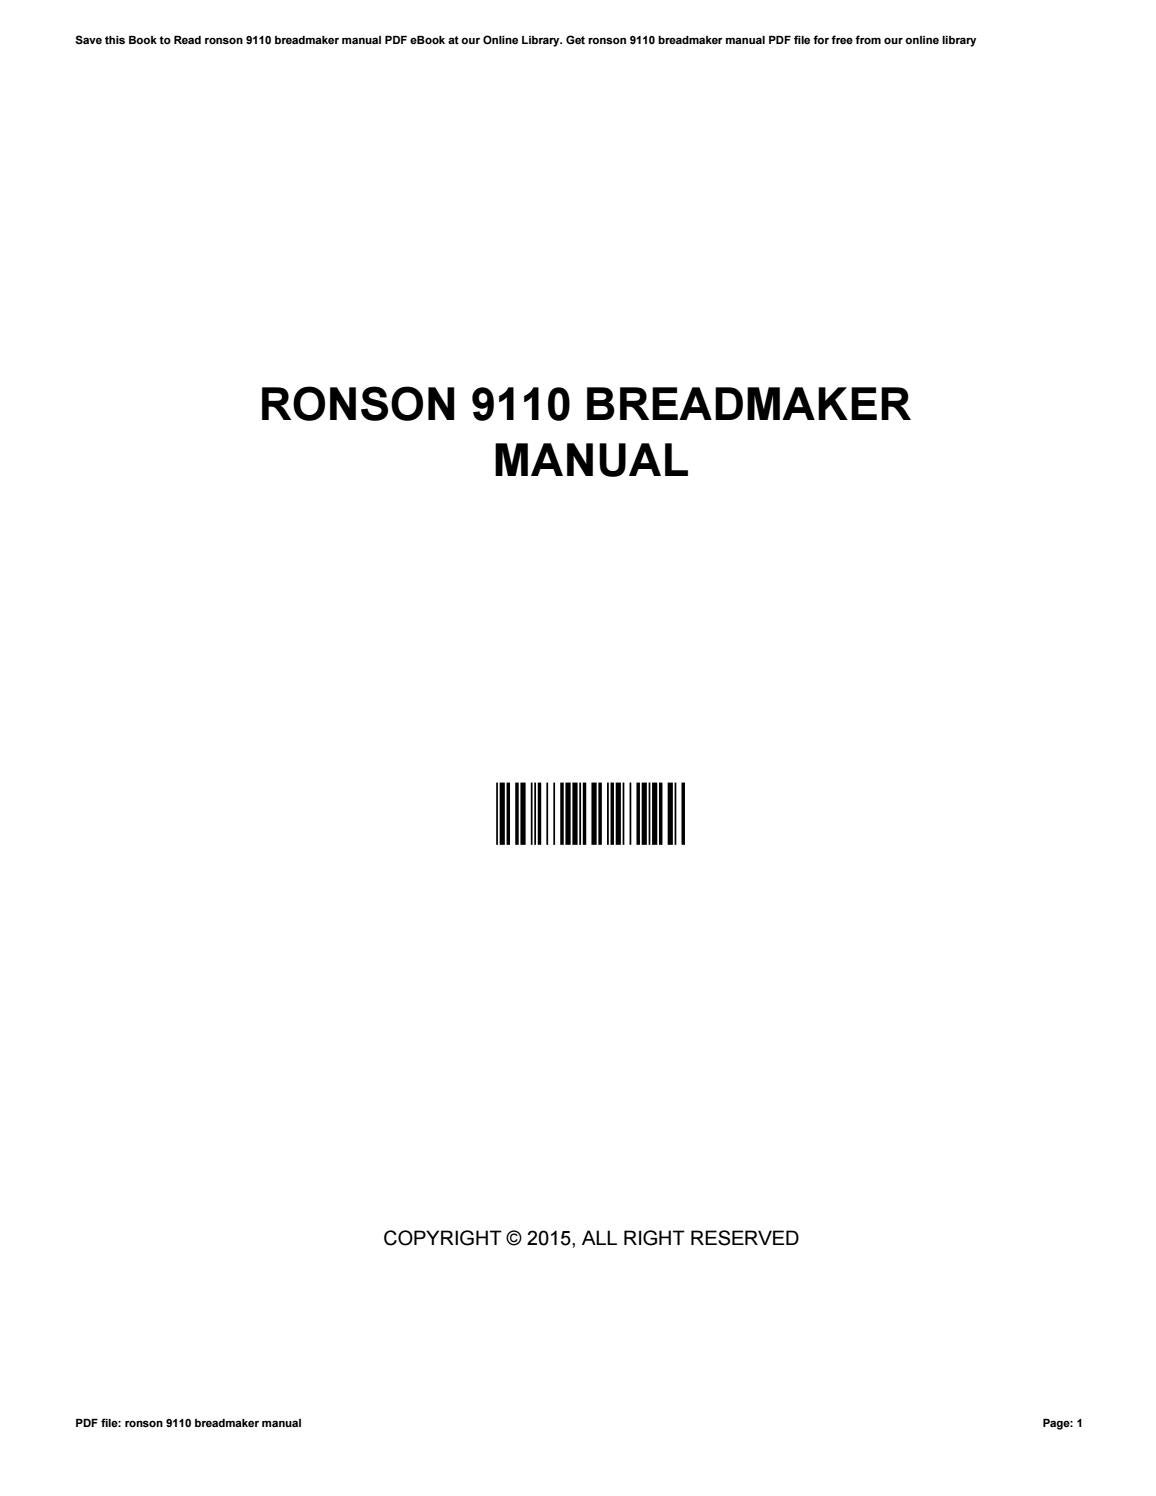 ronson breadmaker 9110 instruction manual